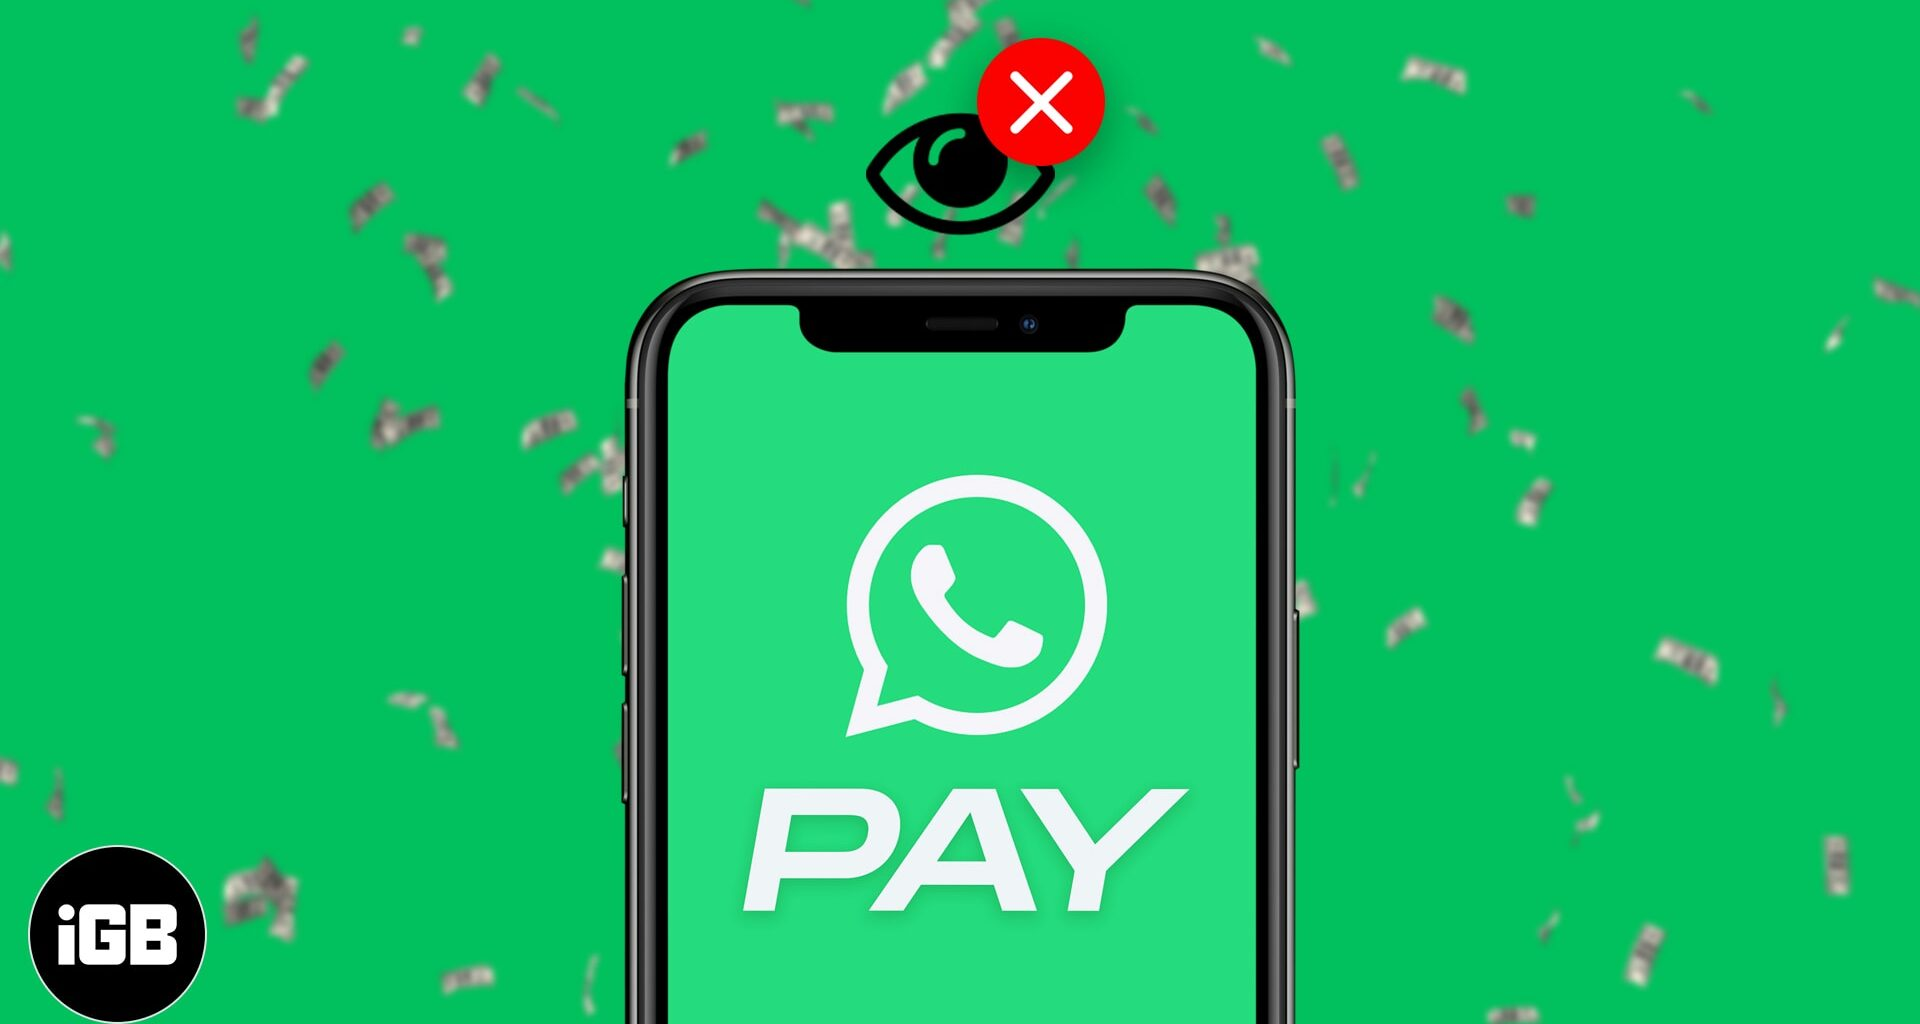 WhatsApp Payment Option Not Showing